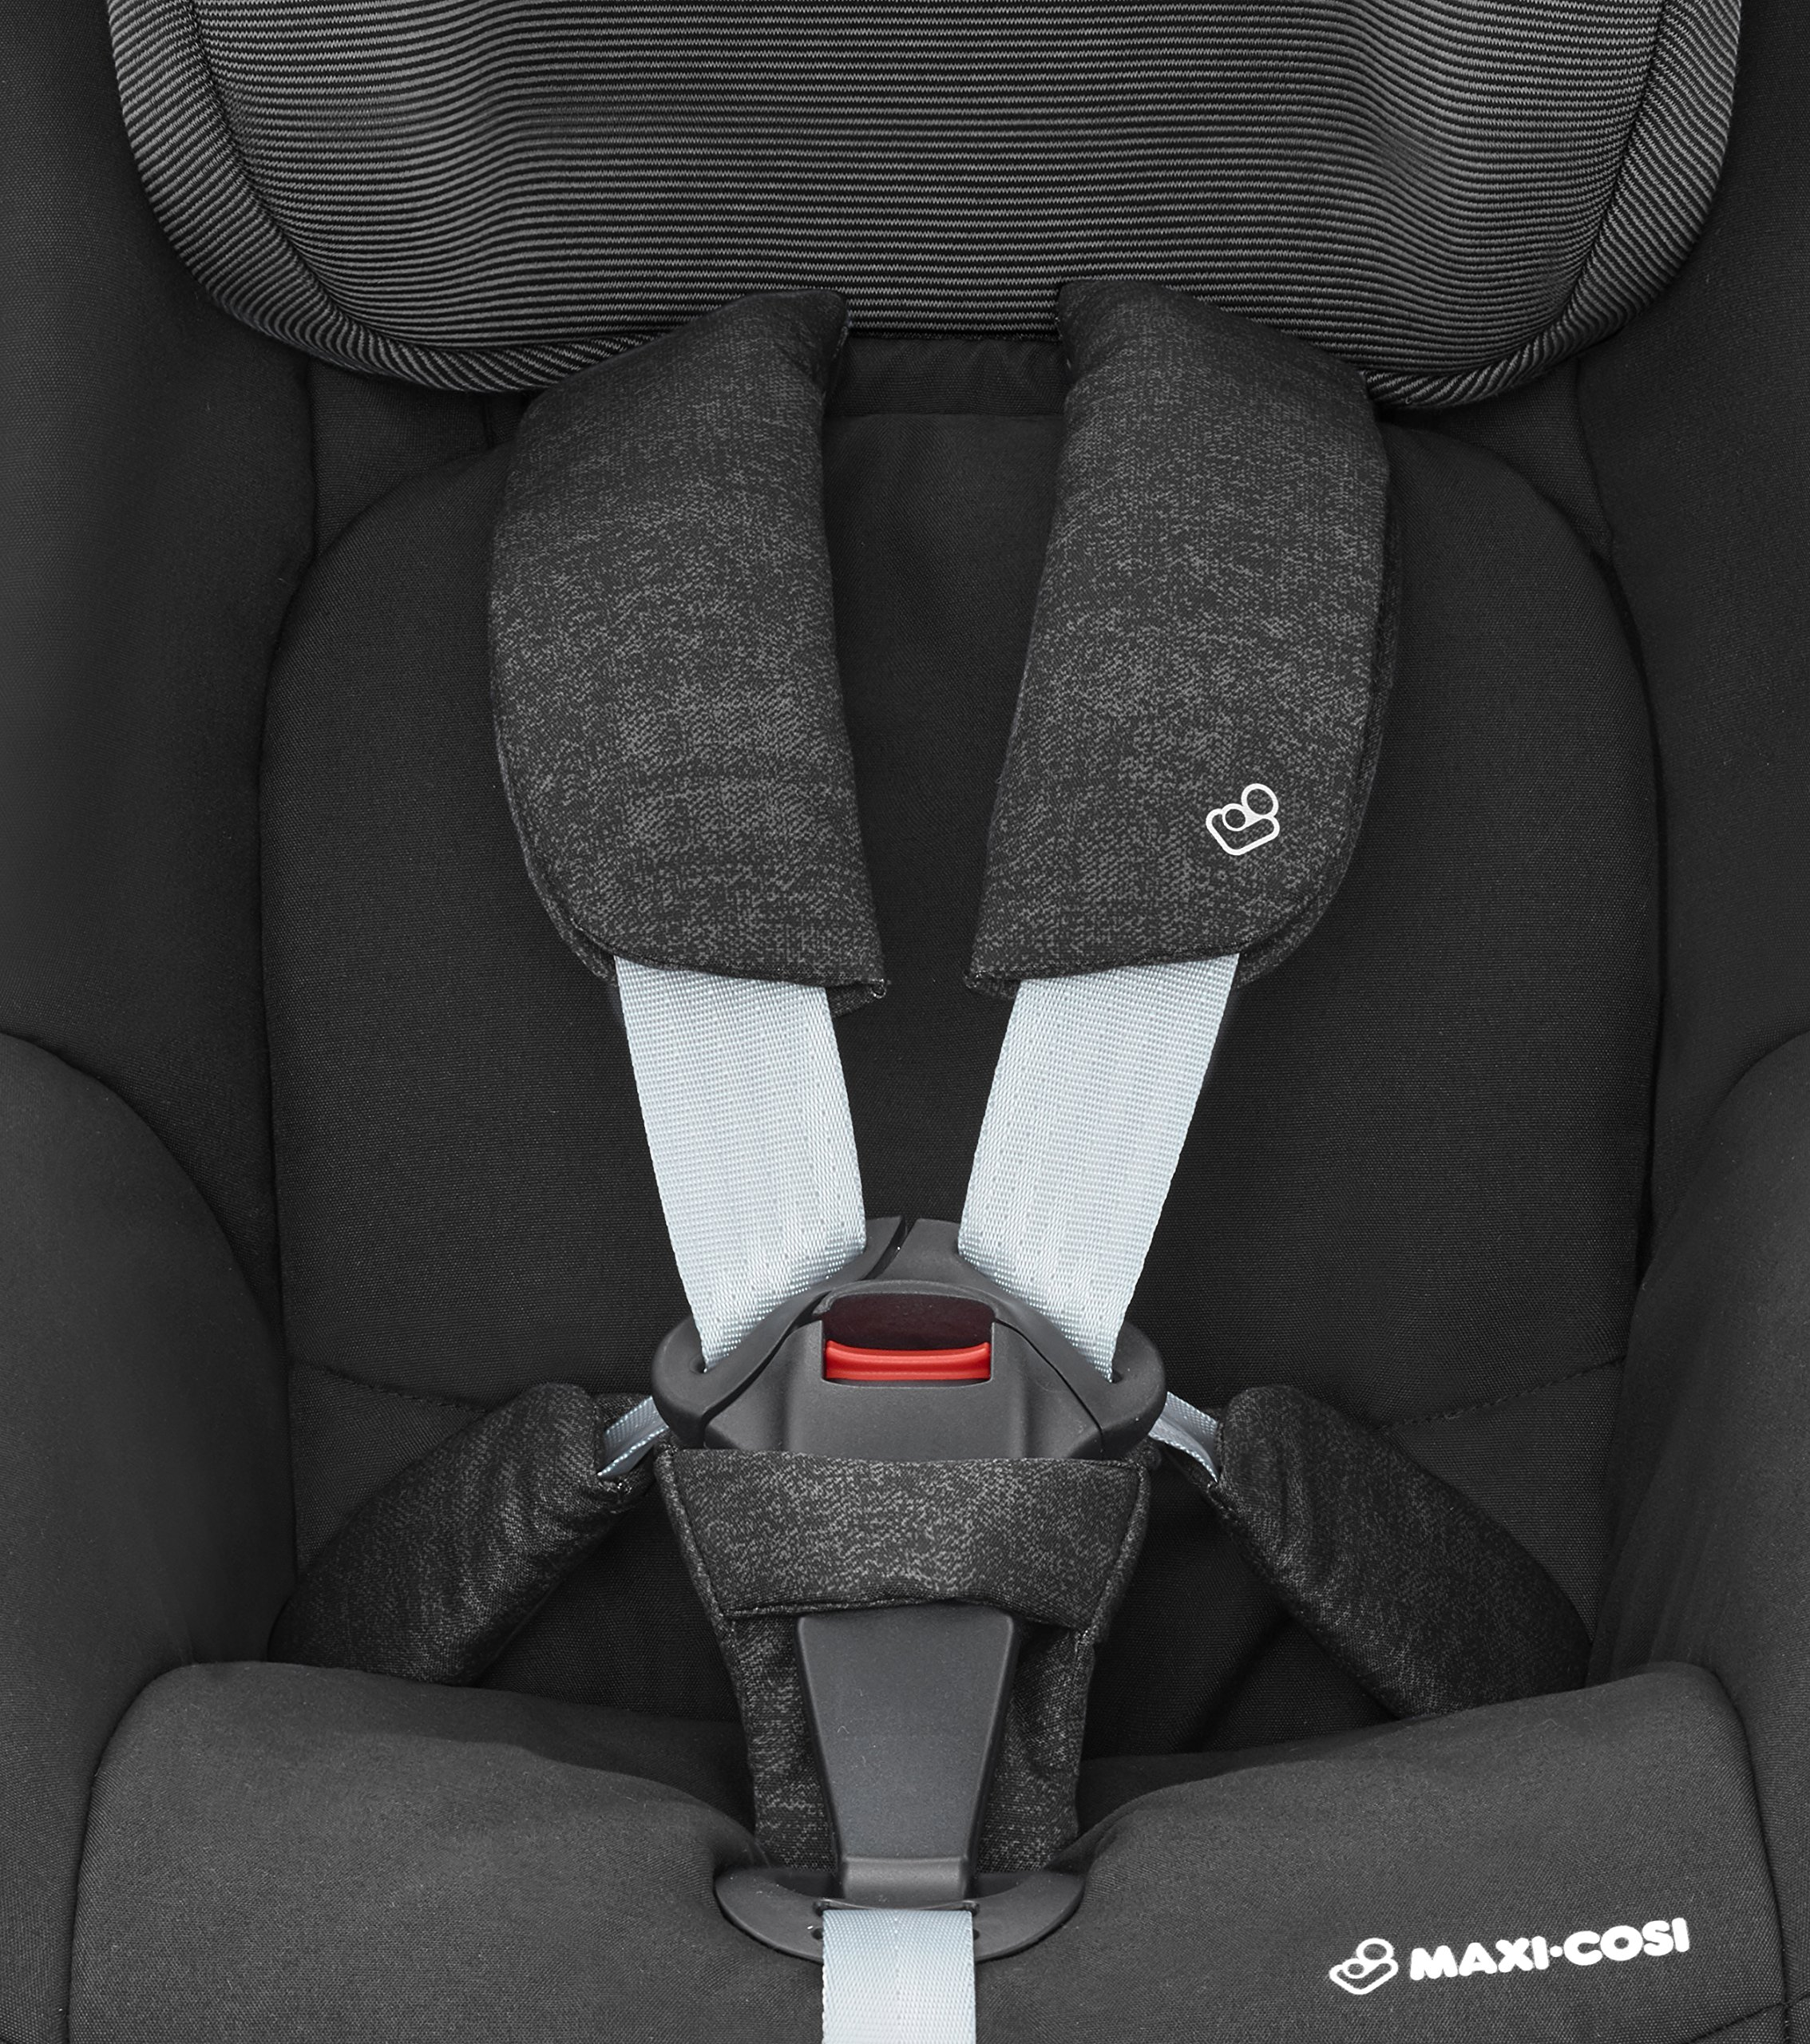 Maxi-Cosi Pearl Toddler Car Seat Group 1, ISOFIX Car Seat, Compact, , 9 Months - 4 Years, 9-18 kg, Nomad Black Maxi-Cosi Interactive visual and audible feedback when the pearl is correctly installed with the maxi-cosi family fix base in the car Spring-loaded, stay open harness to make buckling up your toddler easier as the harness stays out of the way Simultaneous harness & headrest adjustment can be operated with one-hand 9